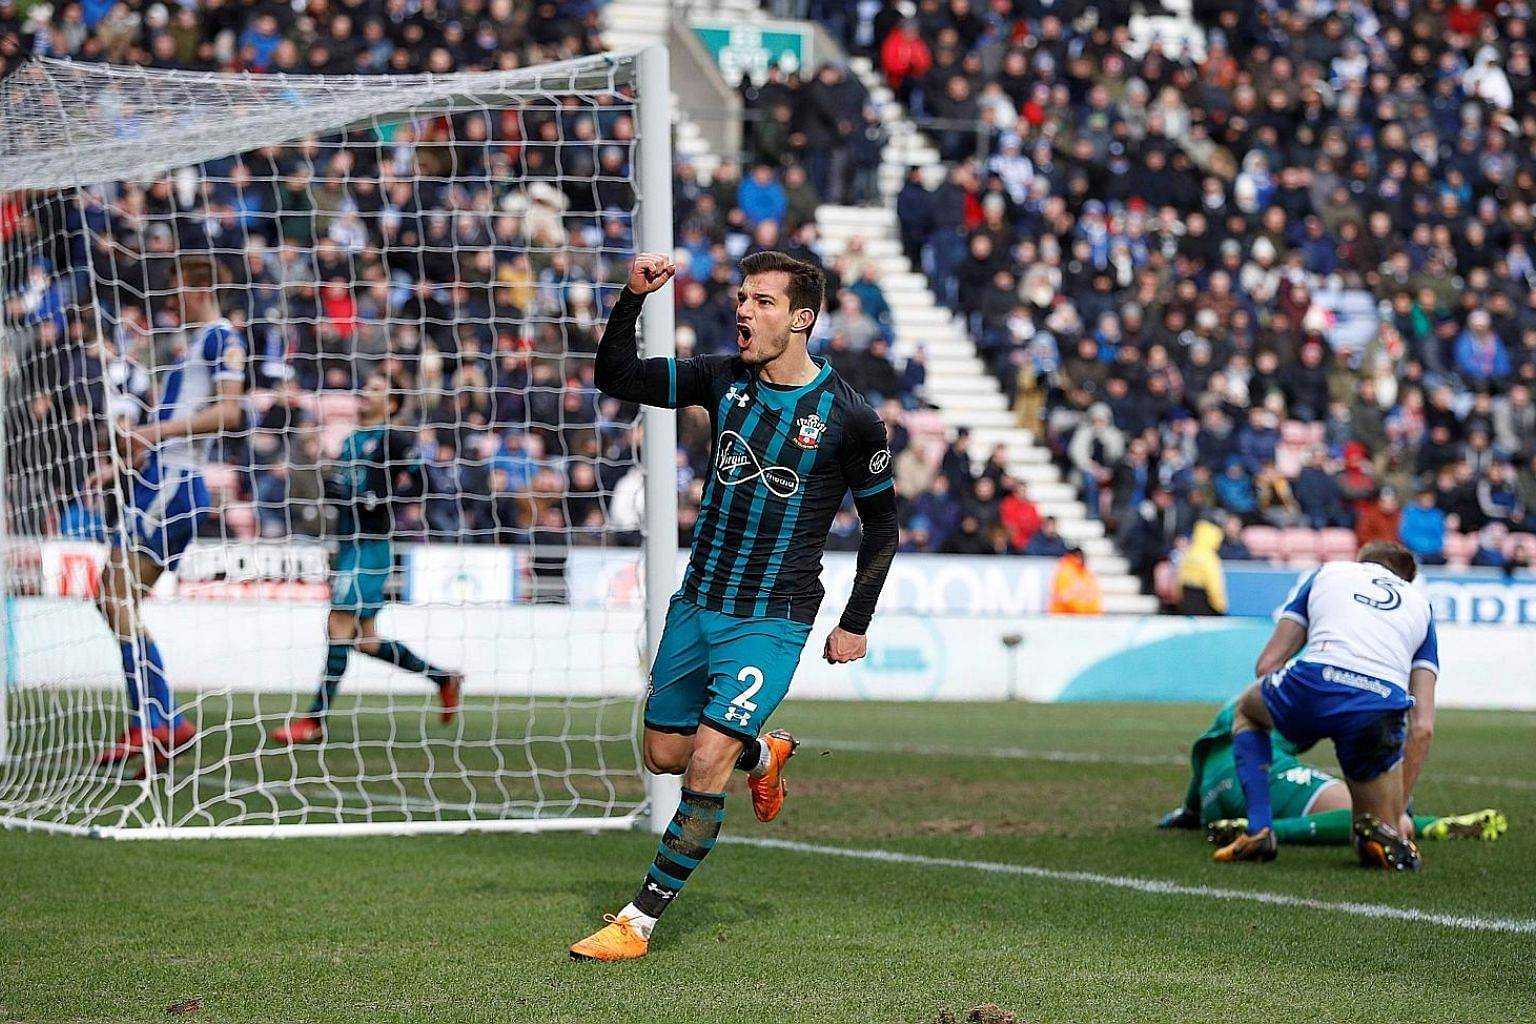 Southampton defender Cedric Soares celebrating after his 91st-minute goal against Wigan sealed a 2-0 win at the DW Stadium yesterday, sending the Saints through to the FA Cup semi-finals for the first time in 15 years. Midfielder Pierre-Emile Hojbjer